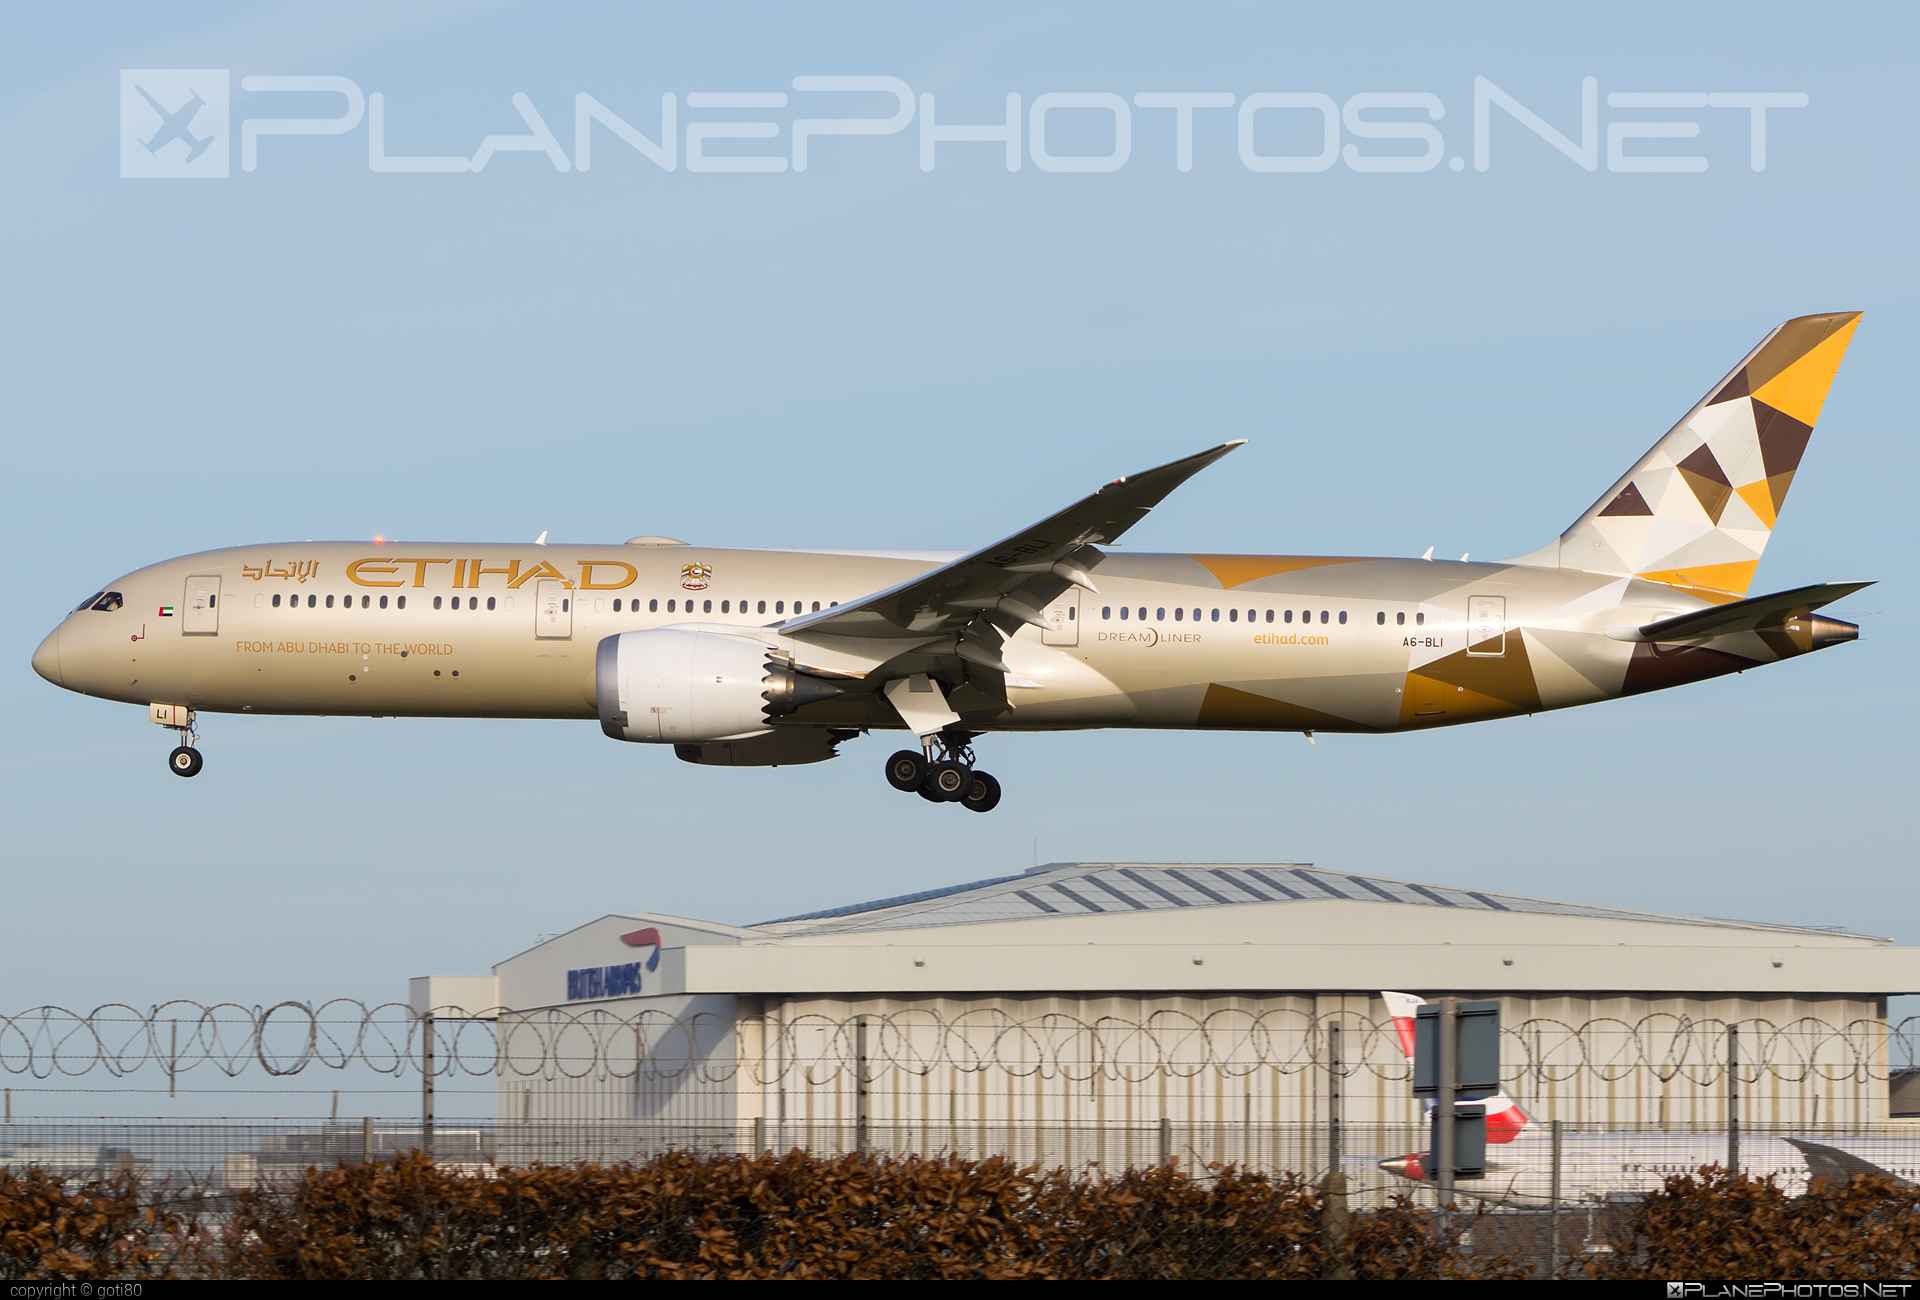 Boeing 787-9 Dreamliner - A6-BLI operated by Etihad Airways #b787 #boeing #boeing787 #dreamliner #etihad #etihadairways